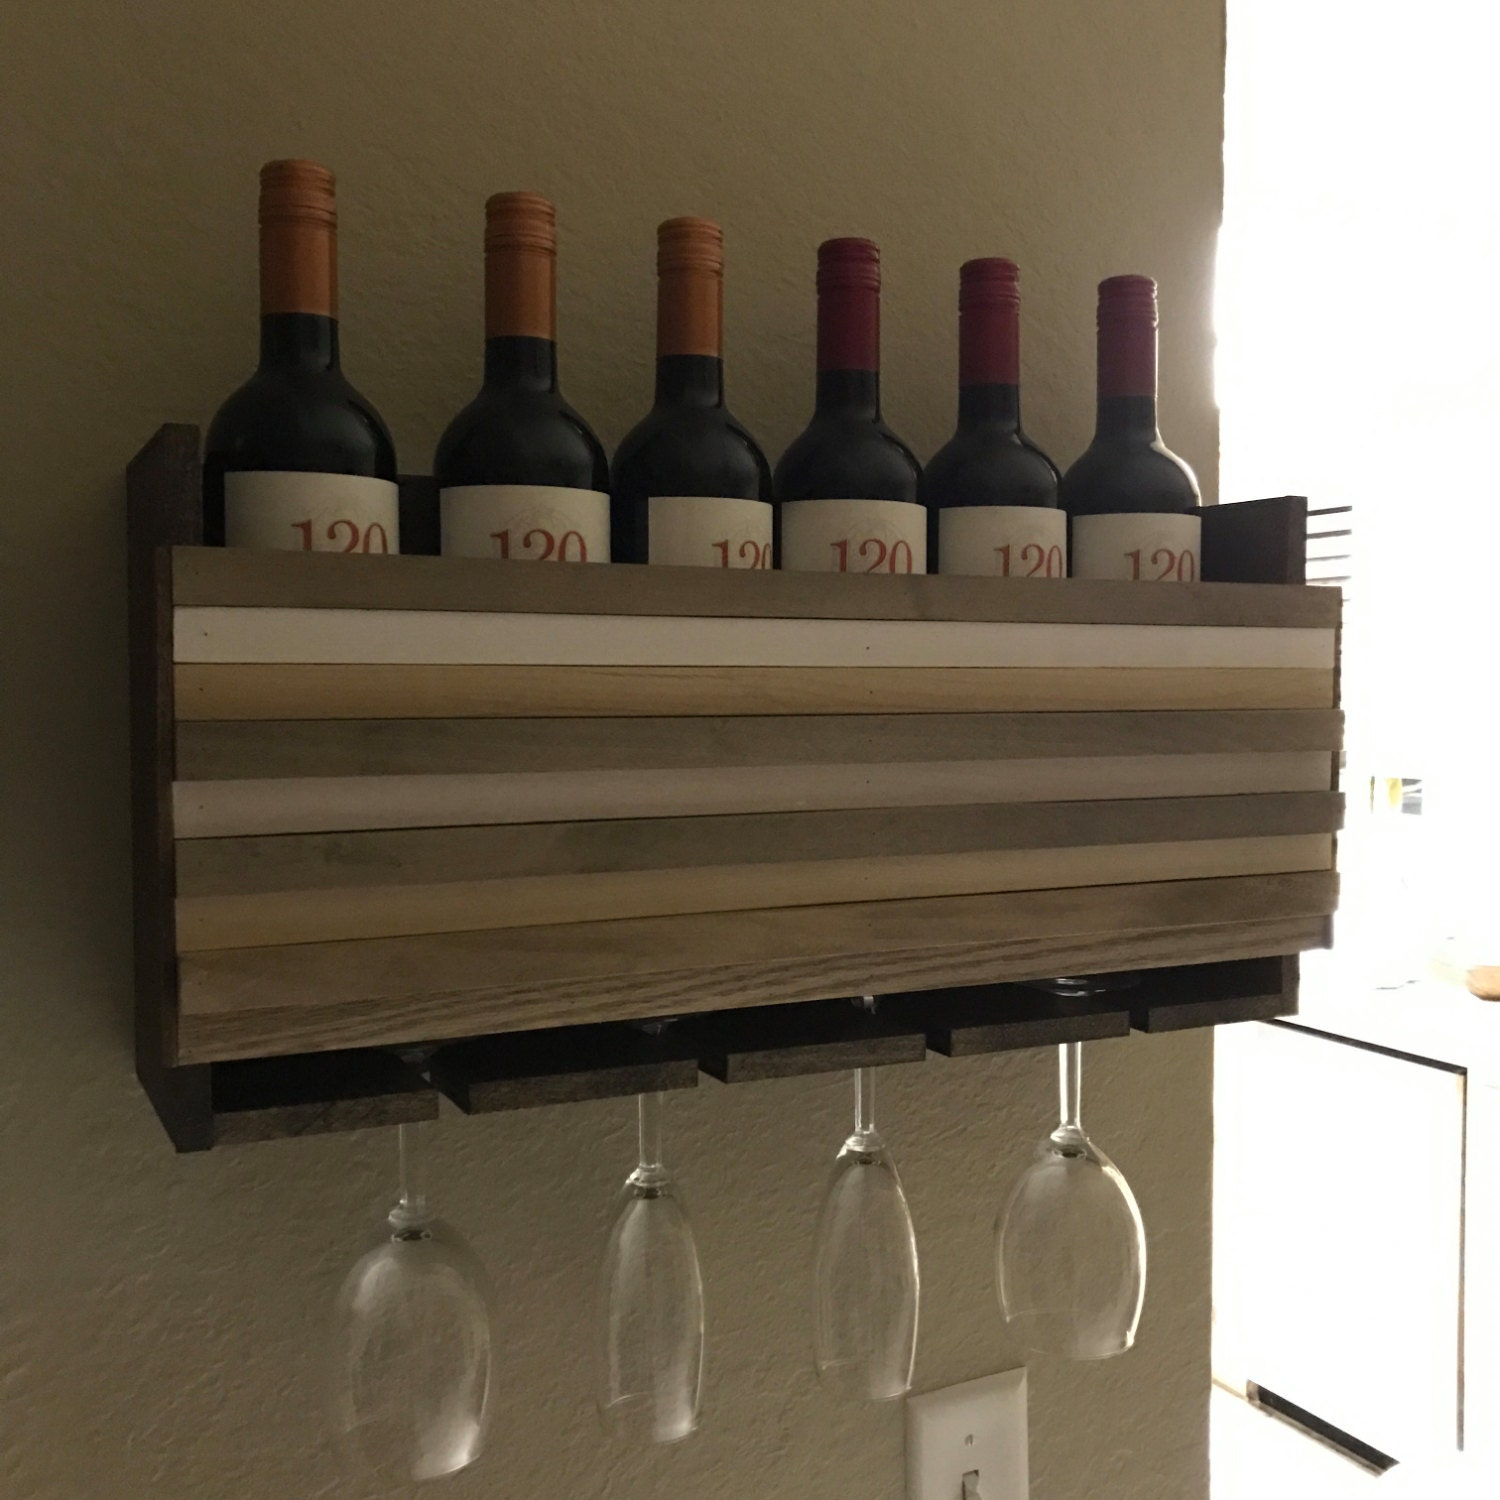 Hanging wine rack with glass holder - Wall Mounted Wine Rack Holder Wine Glass Holder Housewarming Gift Wine Rack Wood Wall Art Organizer Wedding Gift